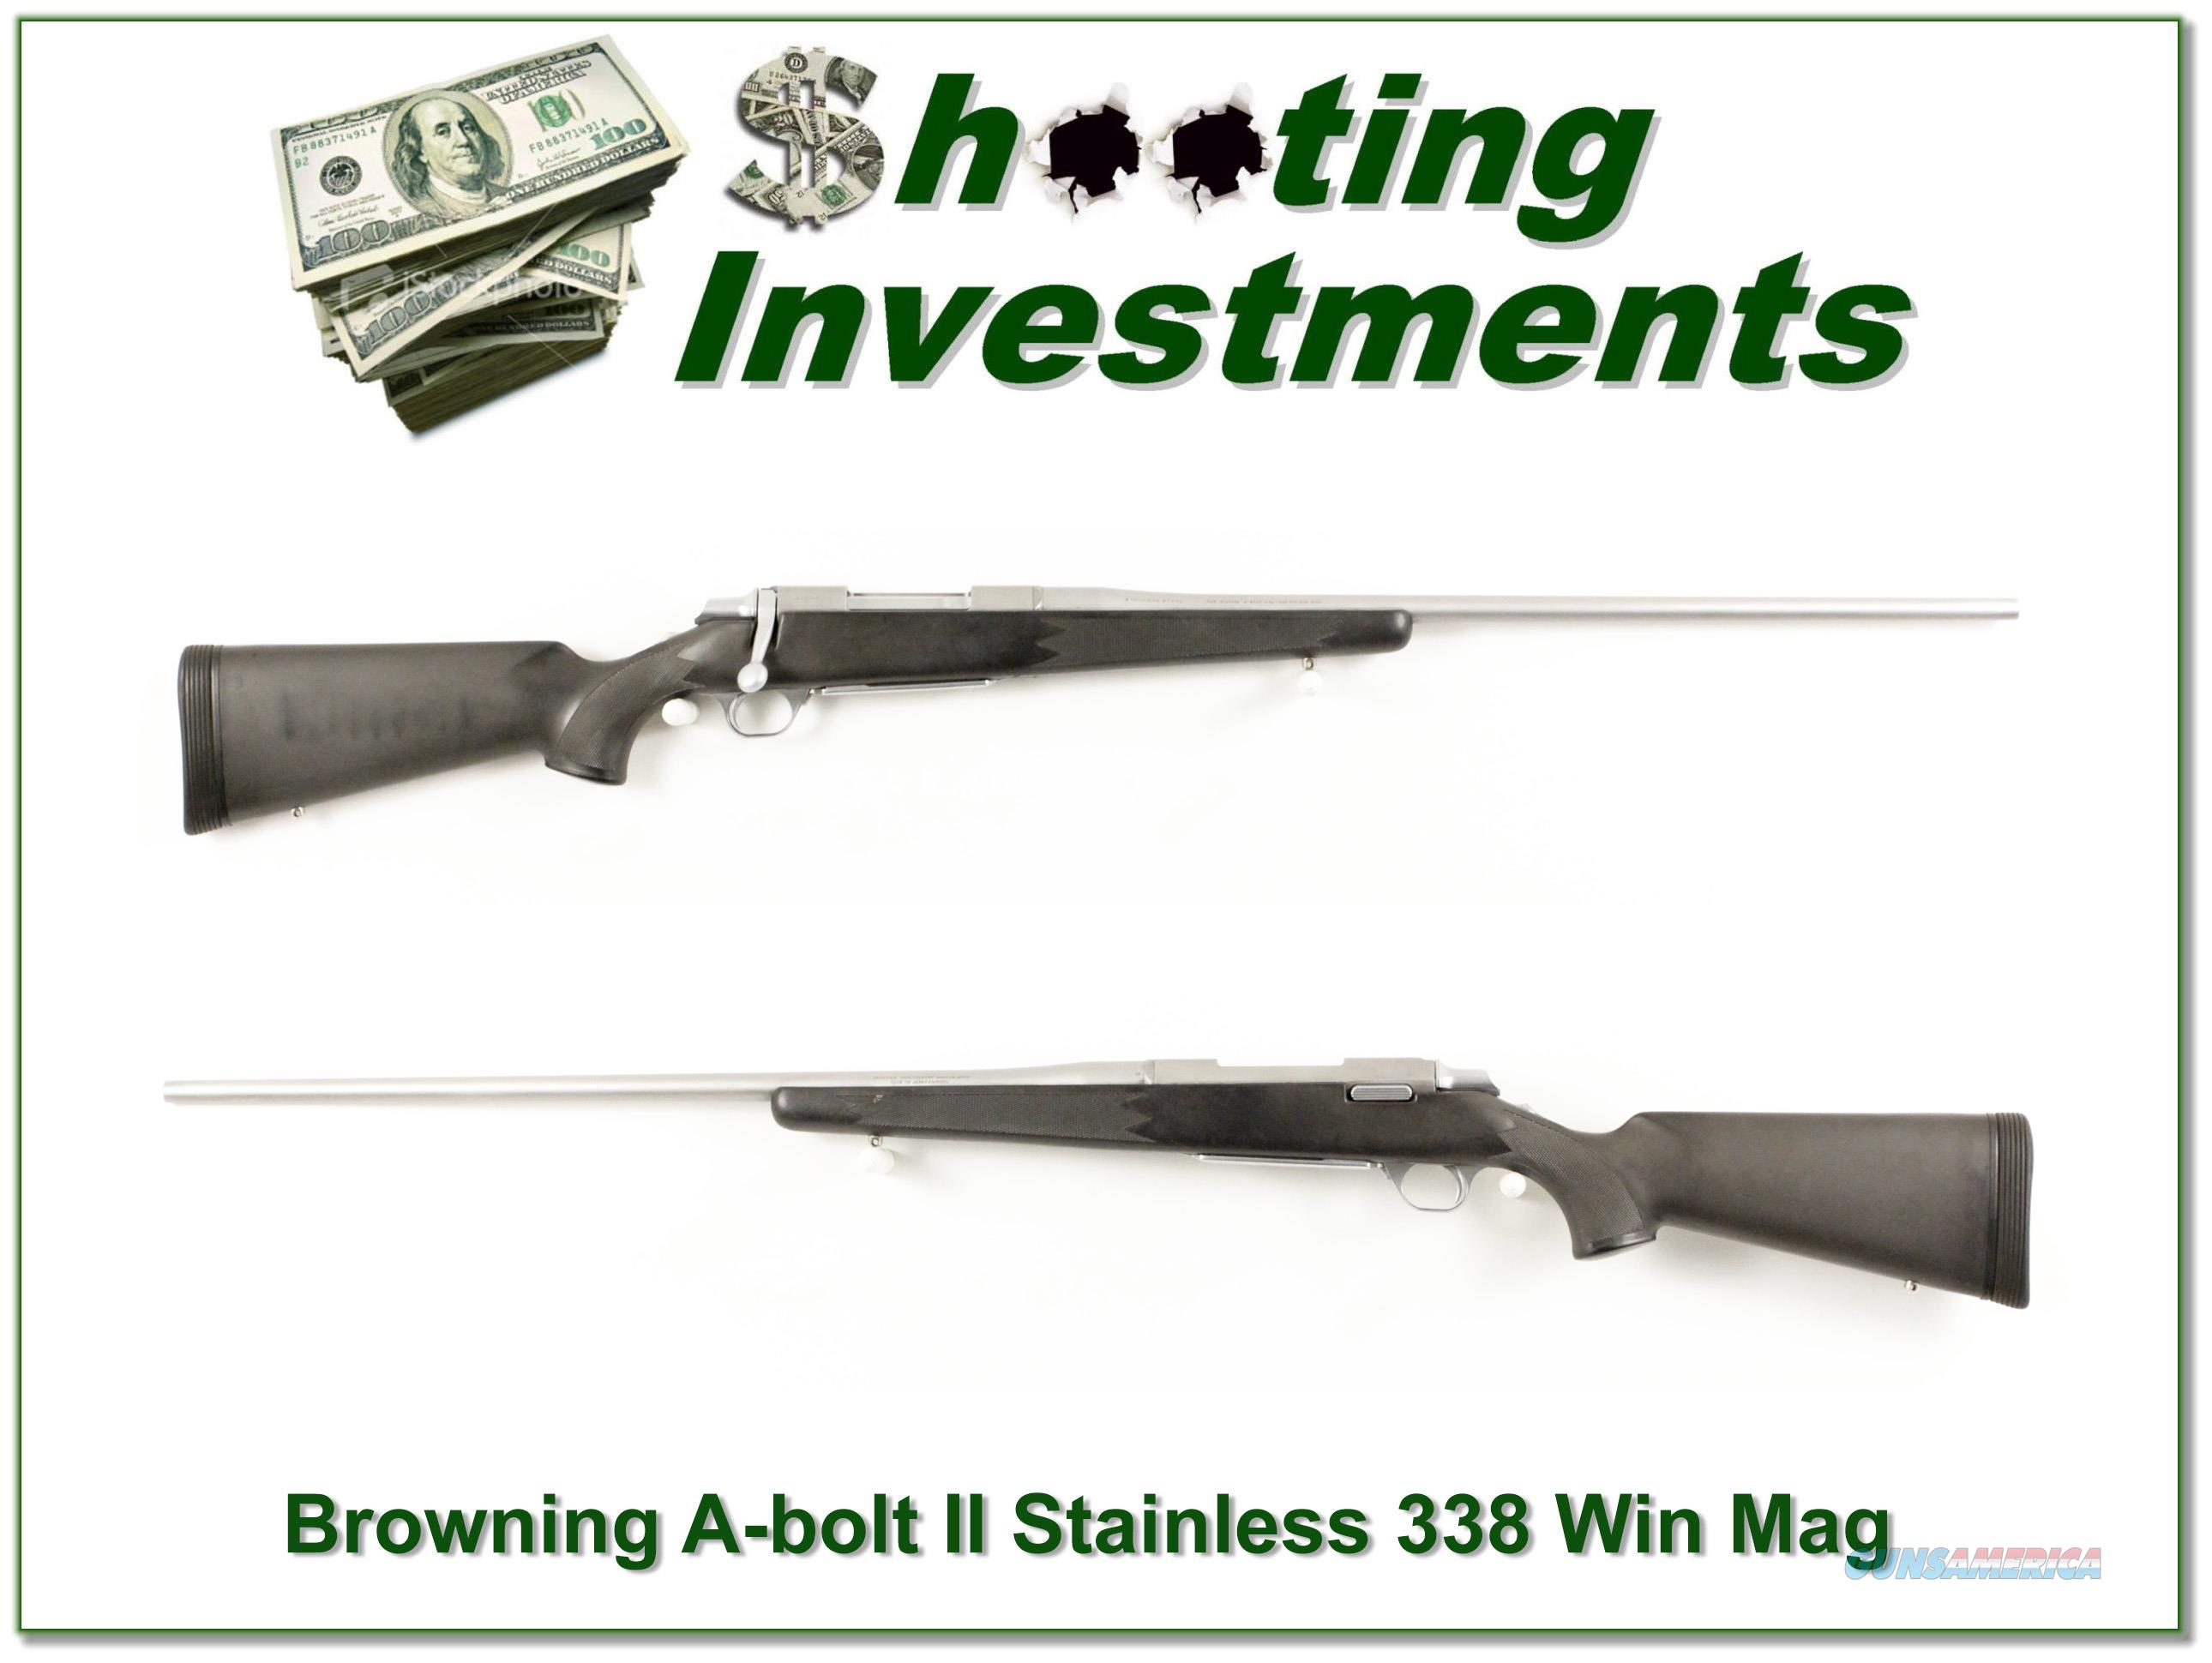 Browning A-bolt II Stainless 338 Win Mag Exc Cond!  Guns > Rifles > Browning Rifles > Bolt Action > Hunting > Stainless